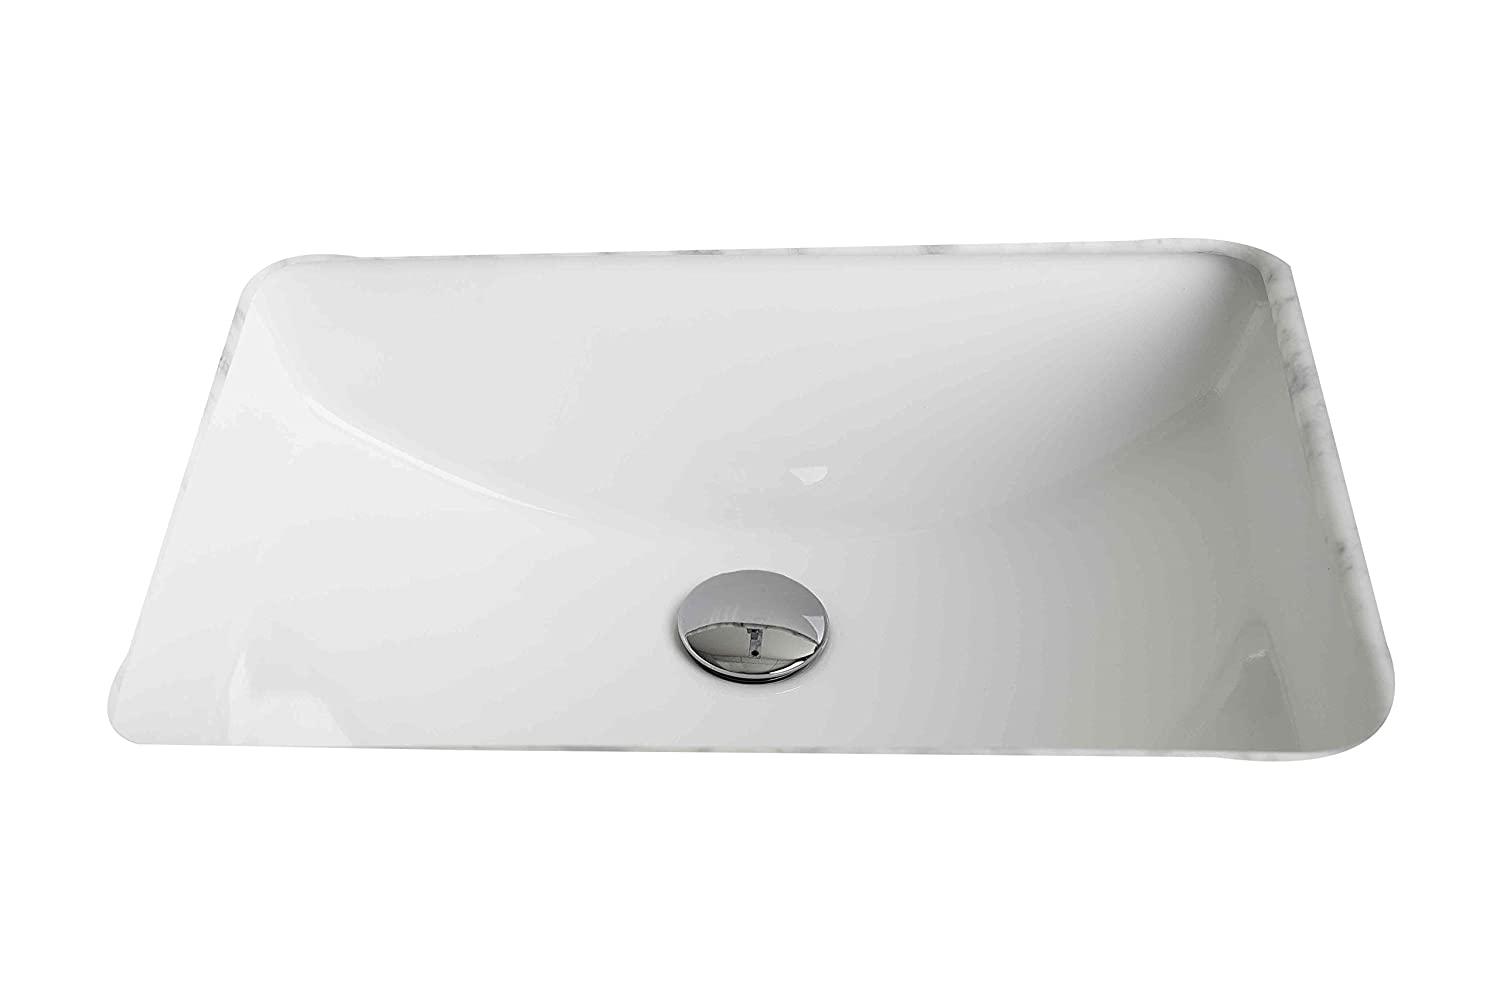 American Imaginations AI-12-176 Rectangle Undermount Sink, 20.75-in. W x 14.35-in. D, White IMG Imports Inc.